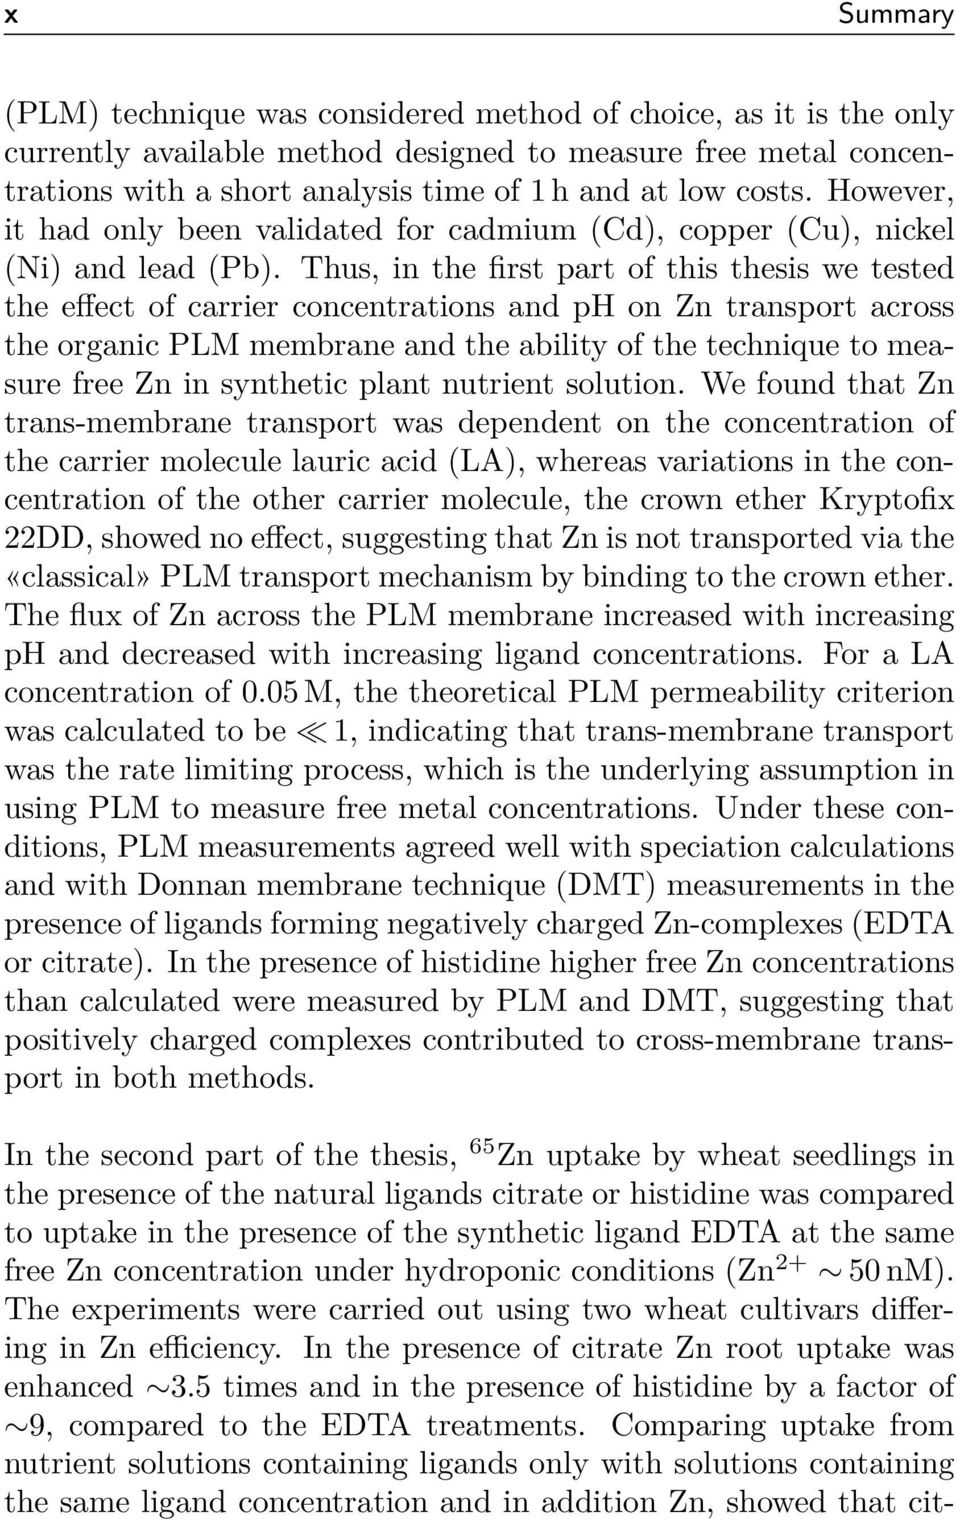 Thus, in the first part of this thesis we tested the e ect of carrier concentrations and ph on Zn transport across the organic PLM membrane and the ability of the technique to measure free Zn in